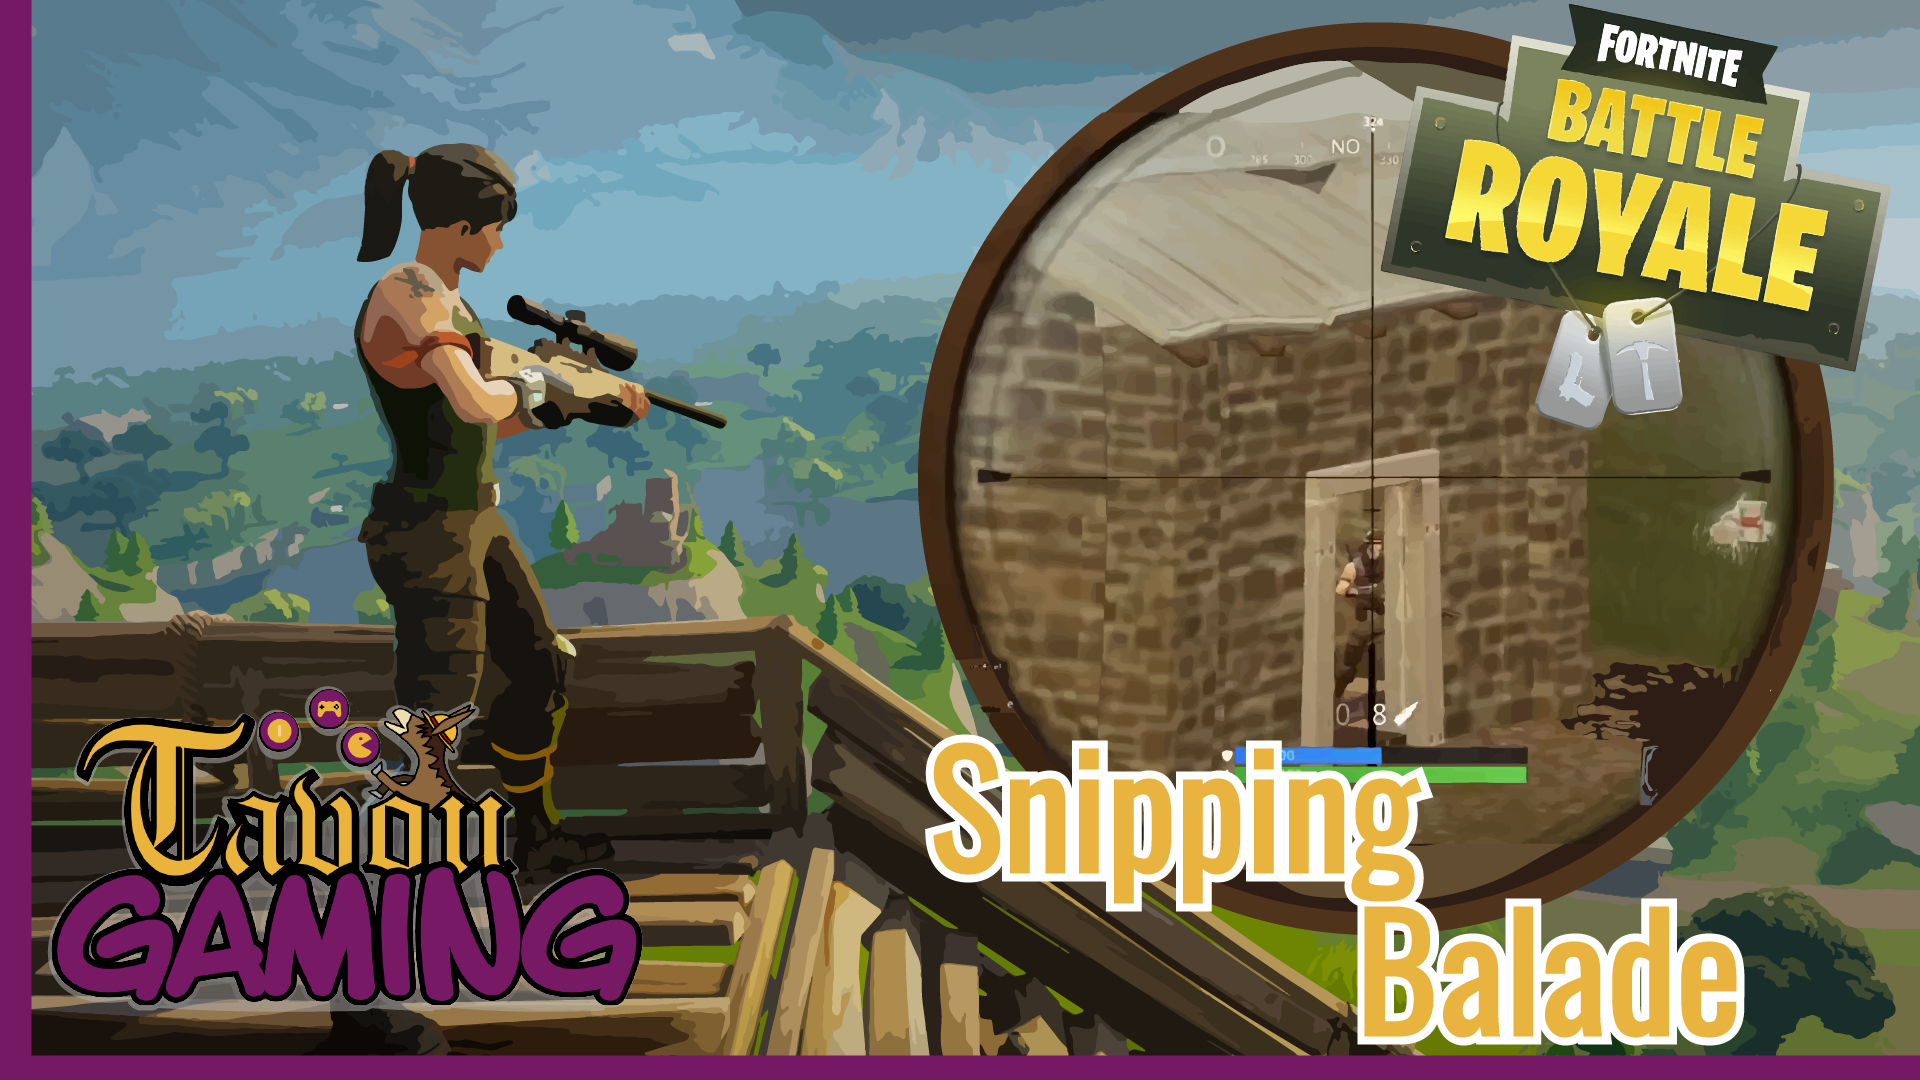 Snipping Balade | FORTNITE : Battle Royale